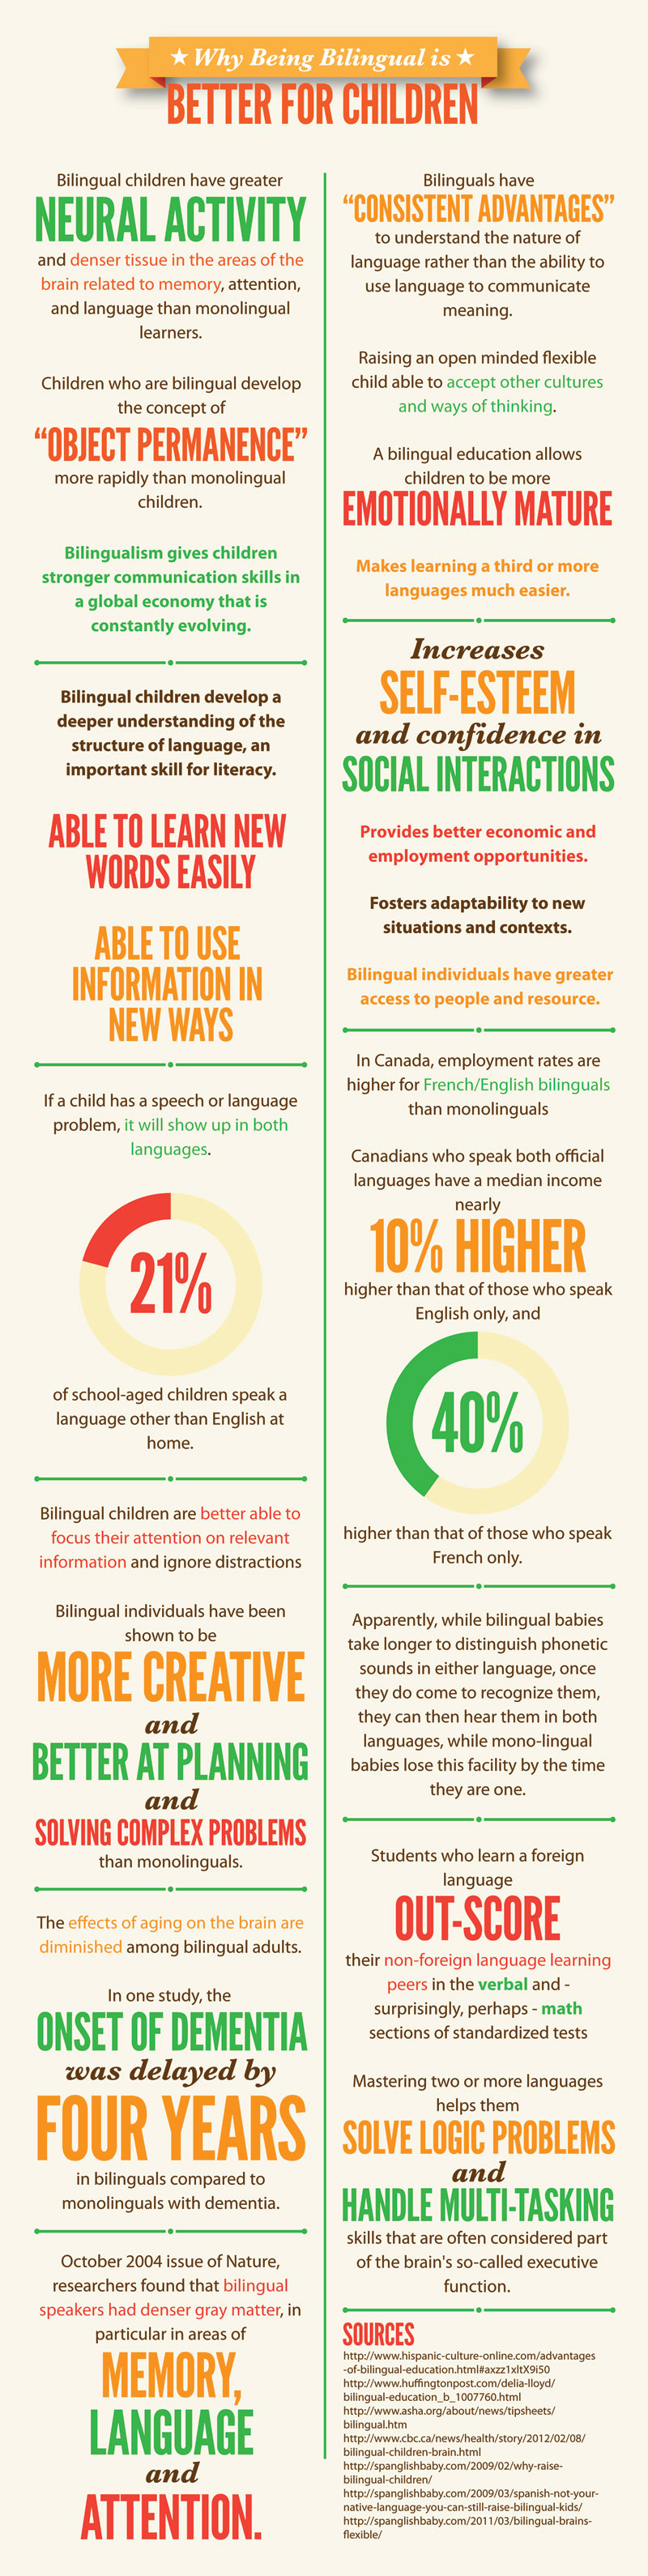 bilingual is better raising bilingual kids teach spanish to children info graphic